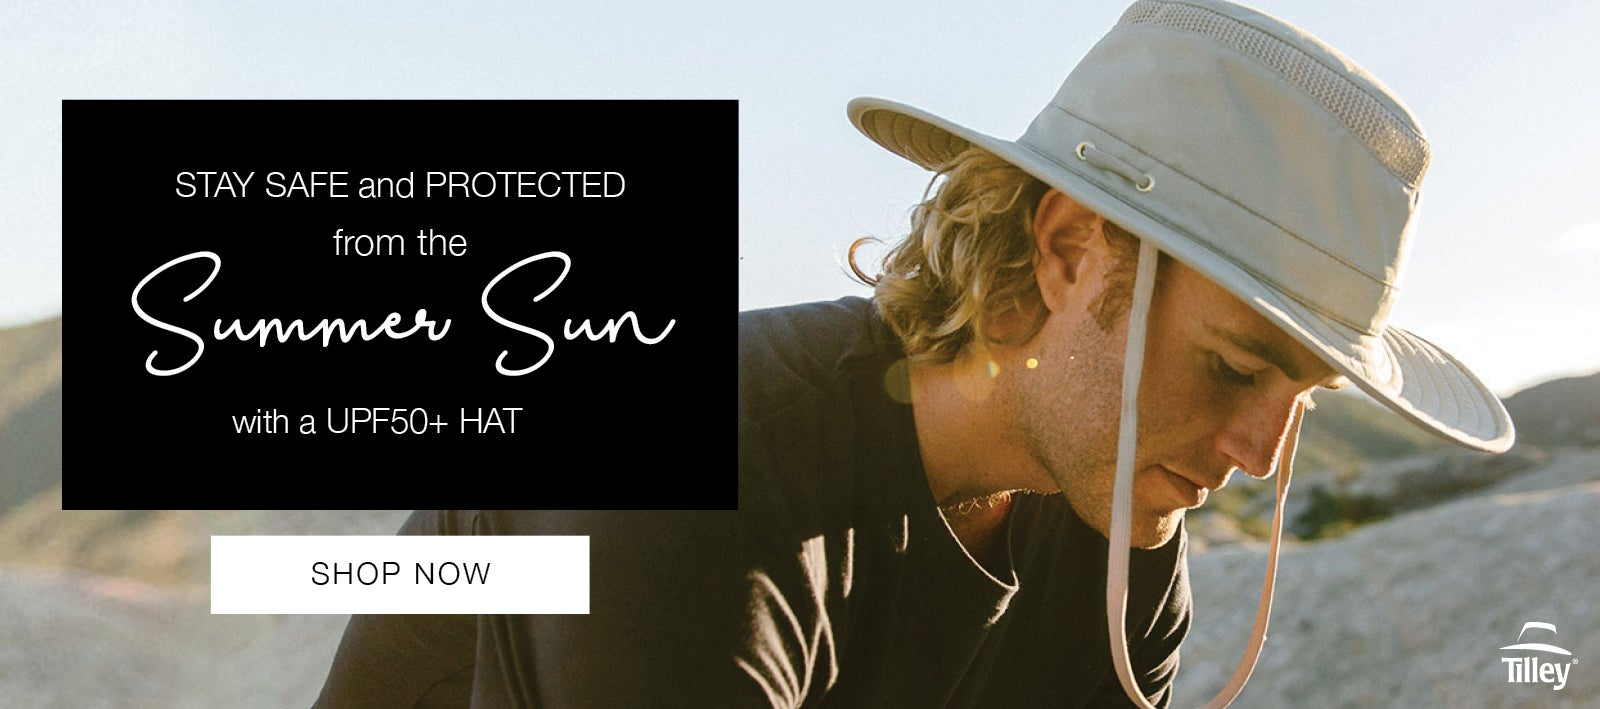 Stay safe from the summer sun!